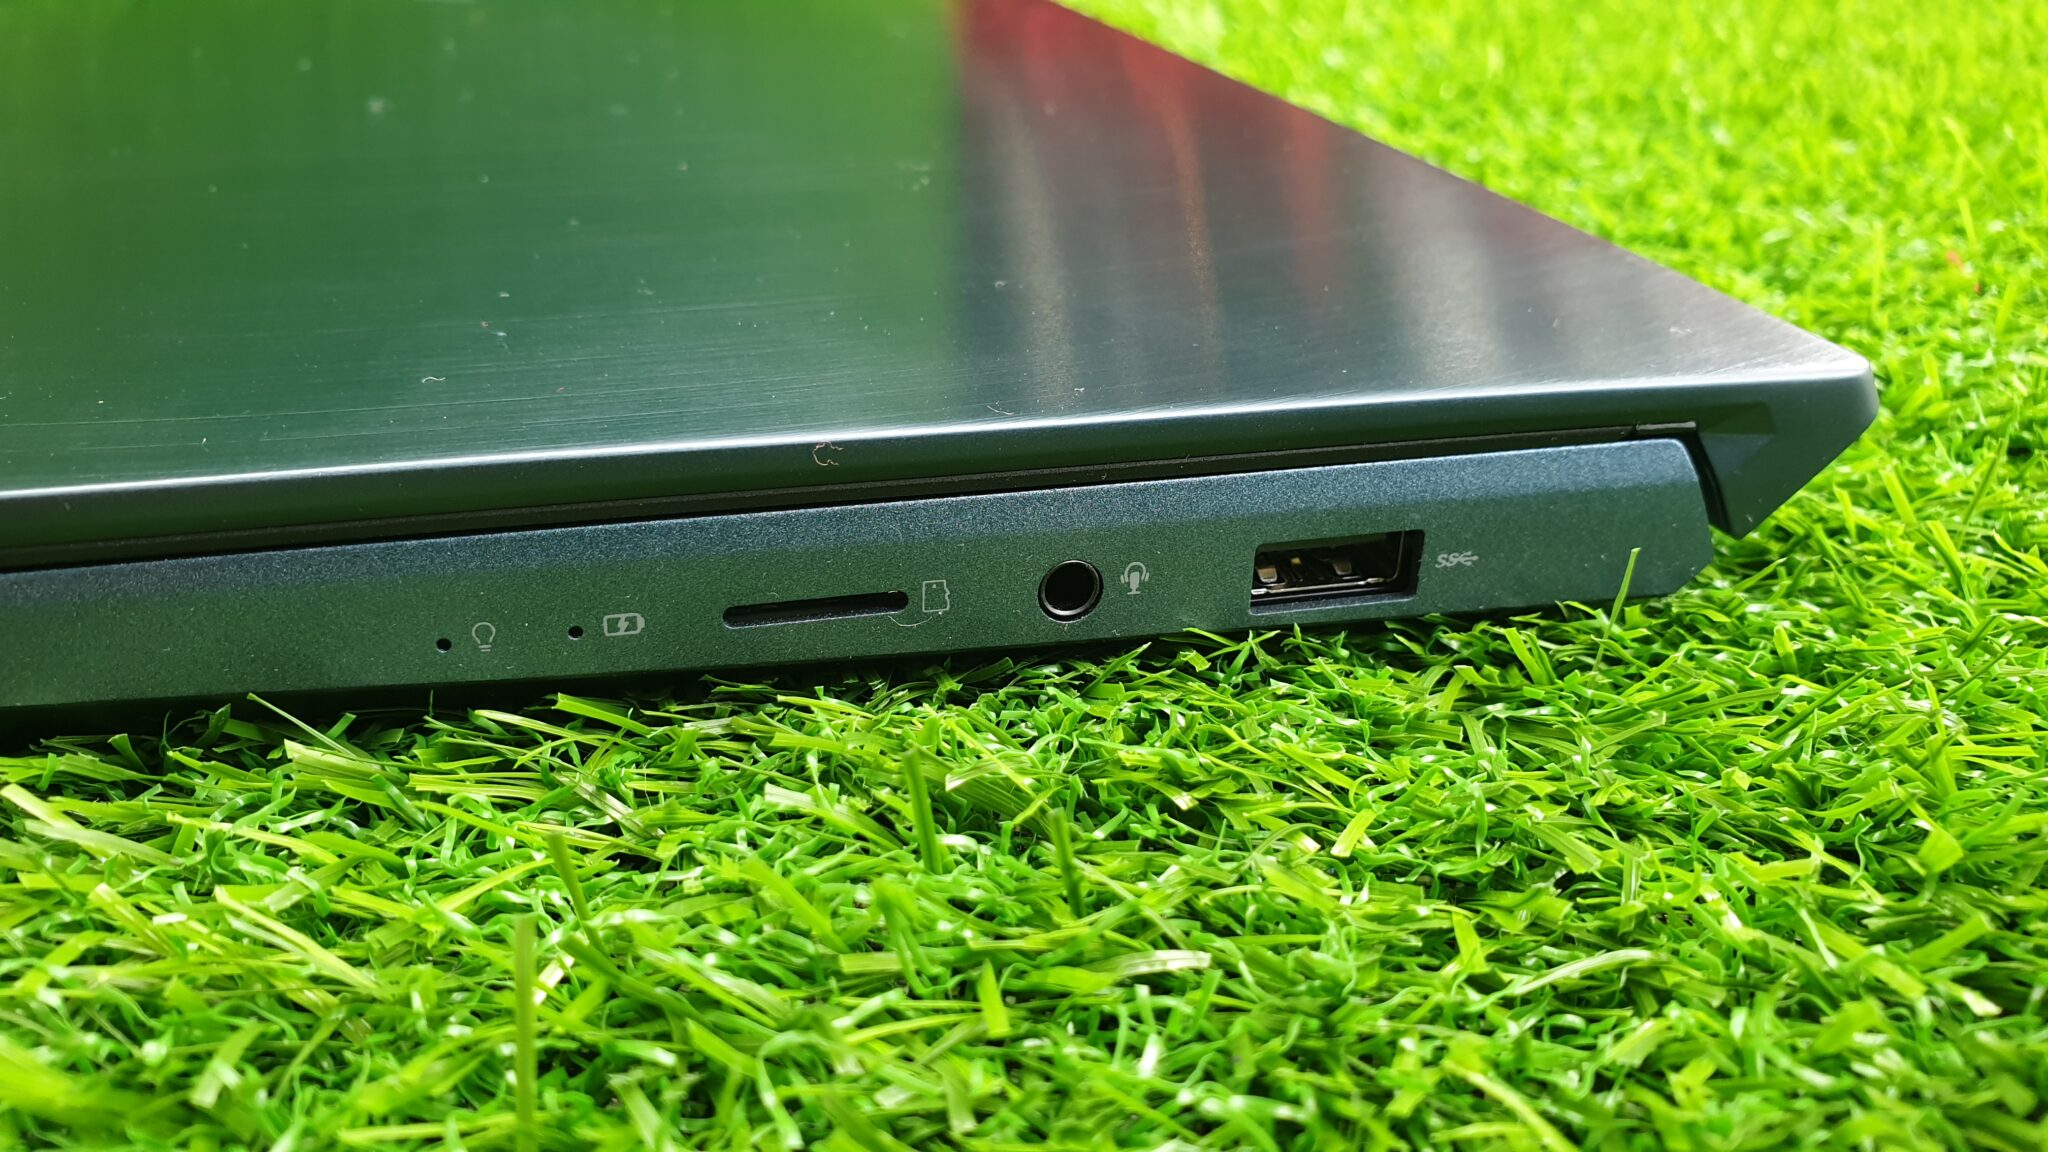 Asus ZenBook Pro Duo UX481F right side